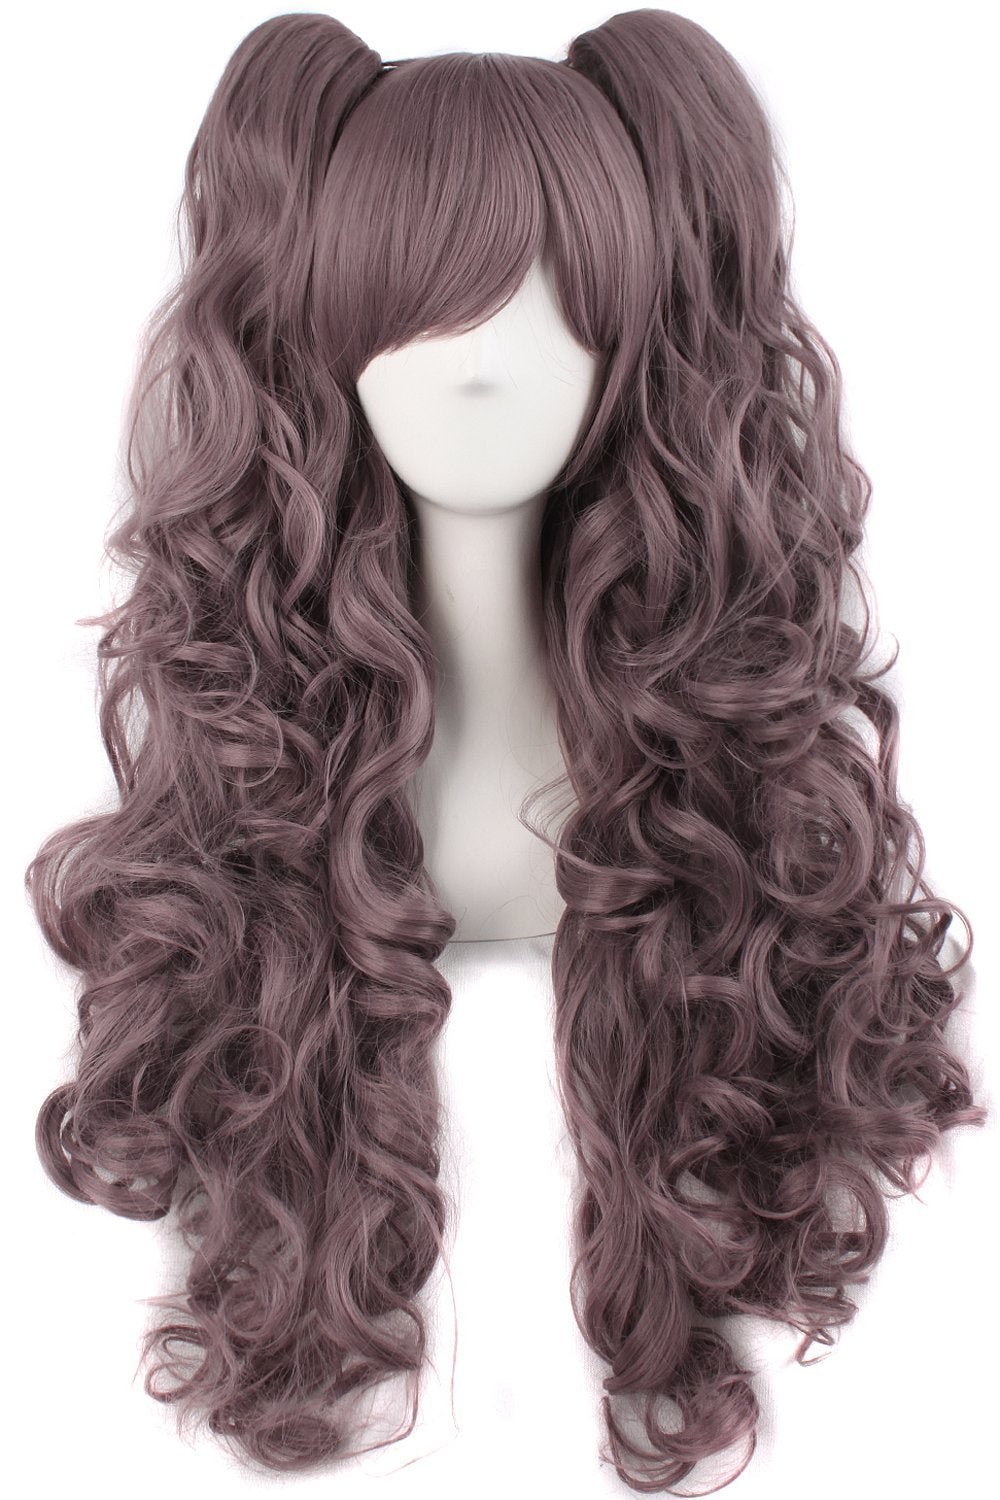 Long Curly Lolita Cosplay Pink Wigs for women Pigtail Ponytail junko enoshima wig